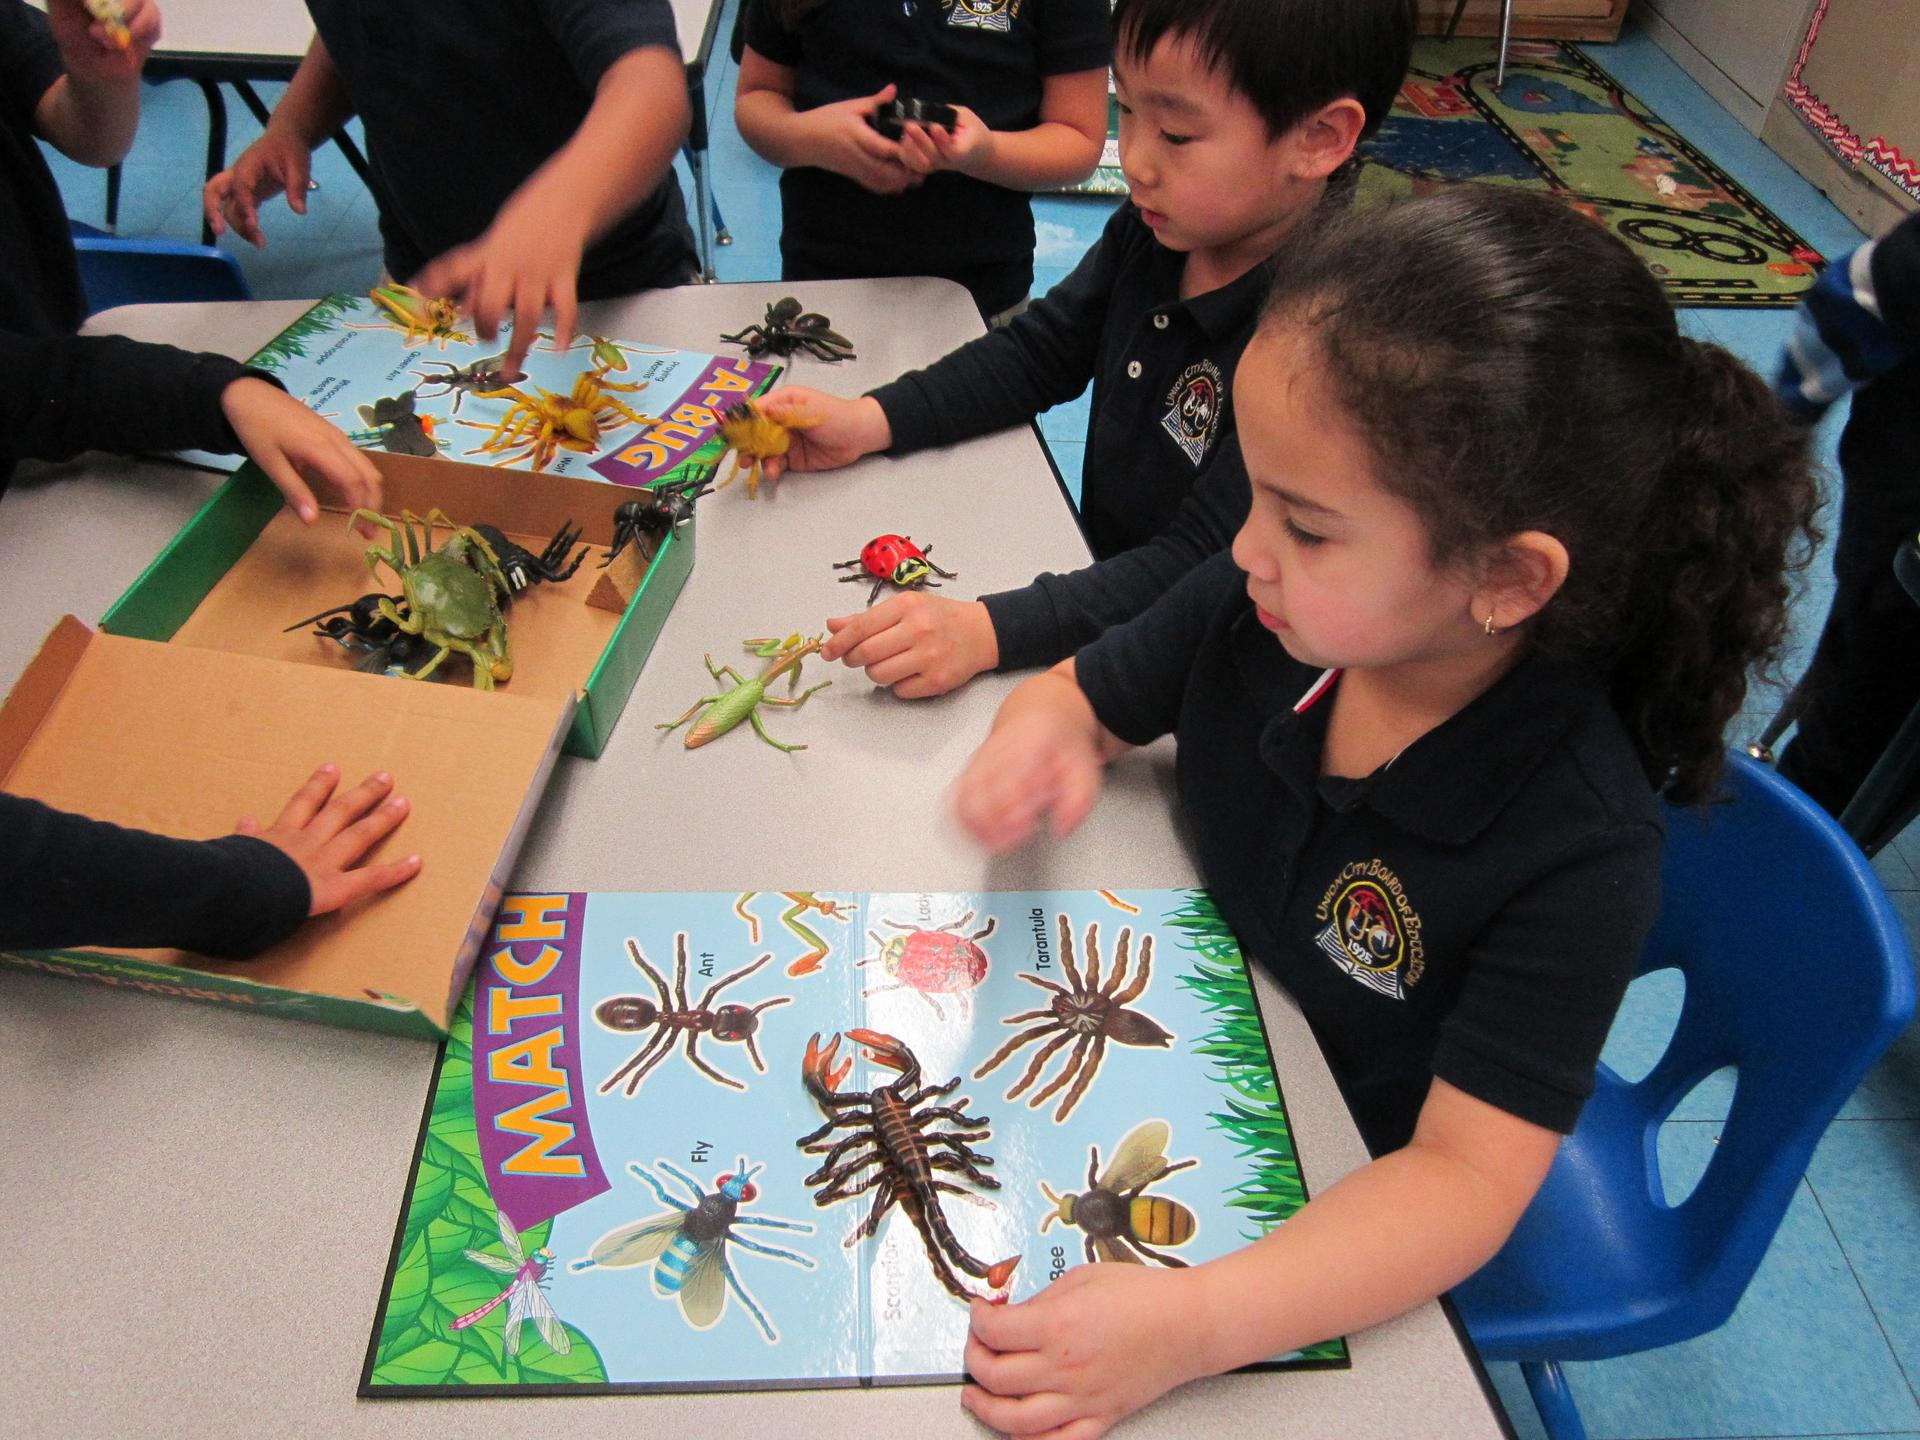 kids looking at plastic bugs with a magnifying glass